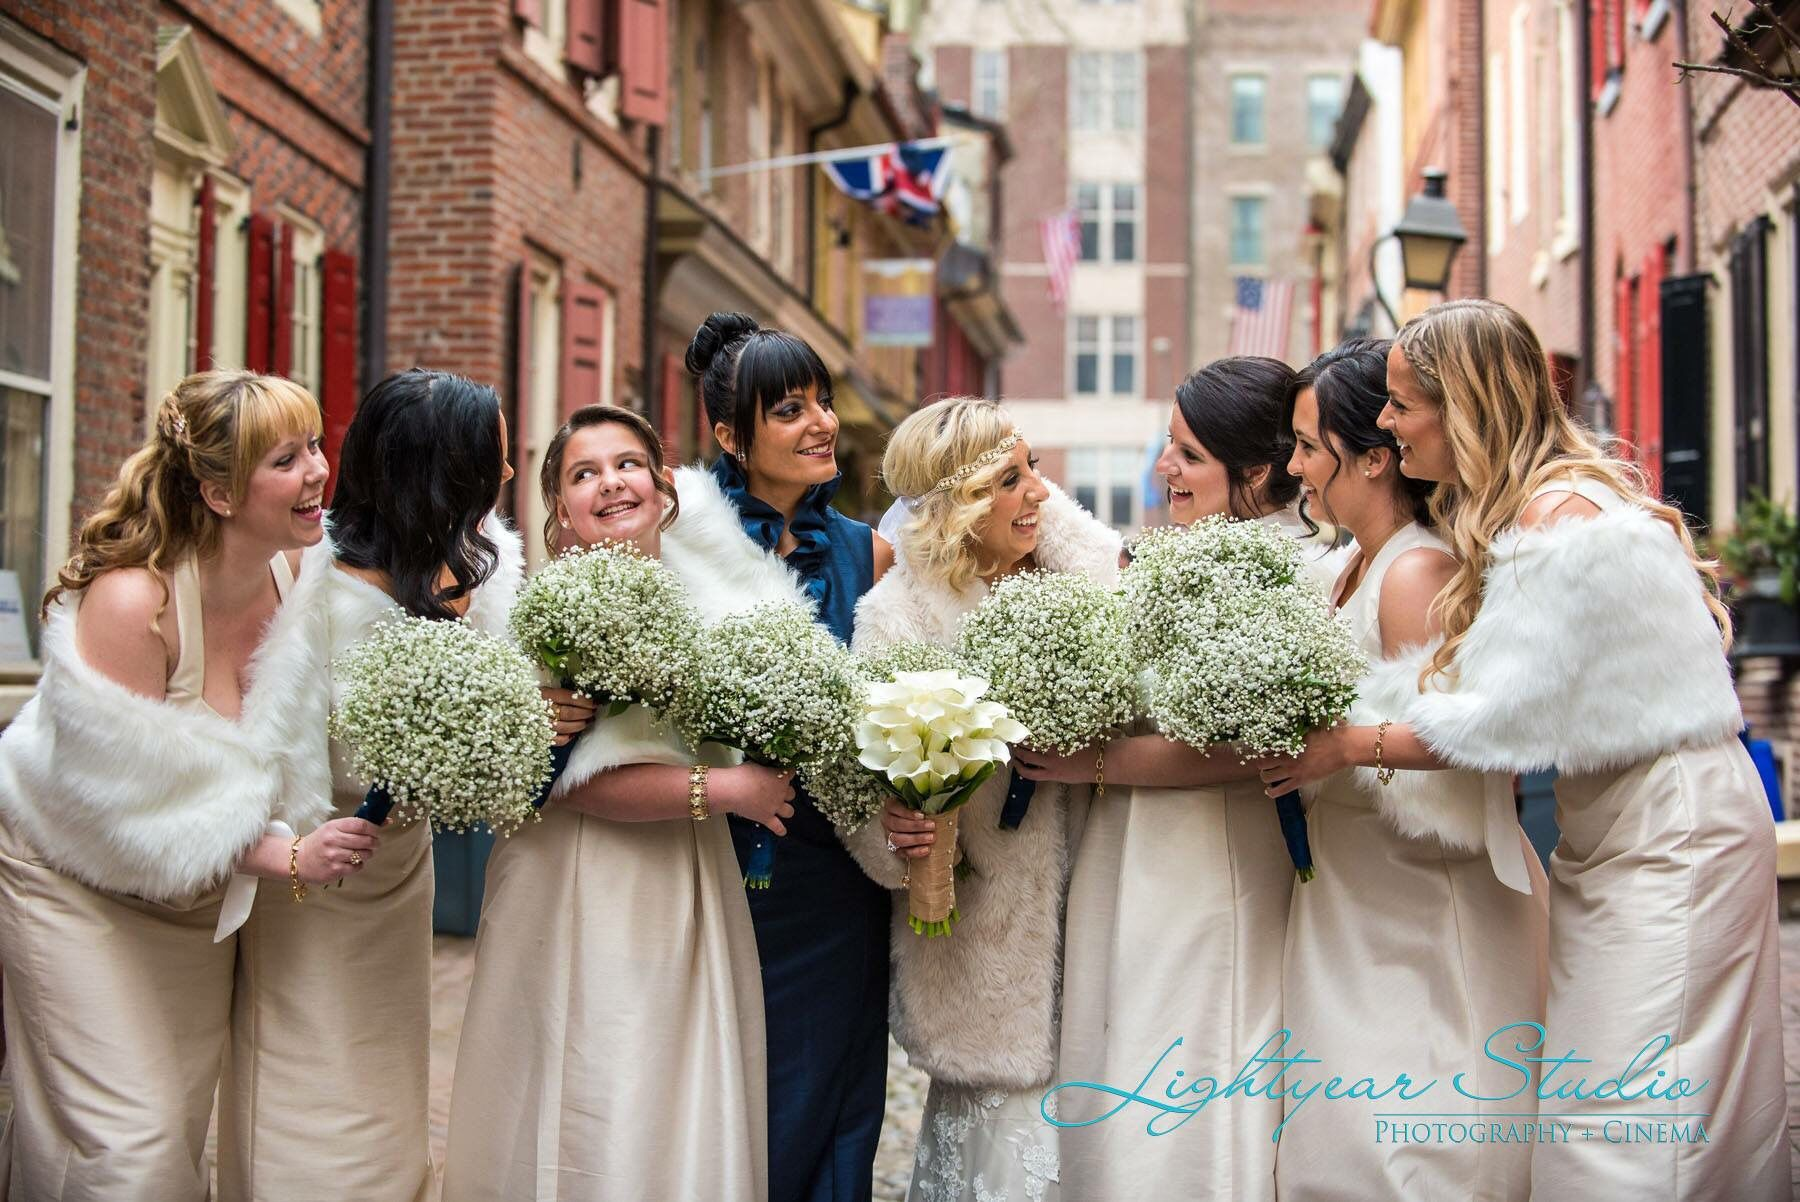 Winter wedding in philadelphia elfreths alley shawls alexbridal winter wedding in philadelphia elfreths alley shawls alexbridal etsy bridesmaid dresses alfred ombrellifo Image collections